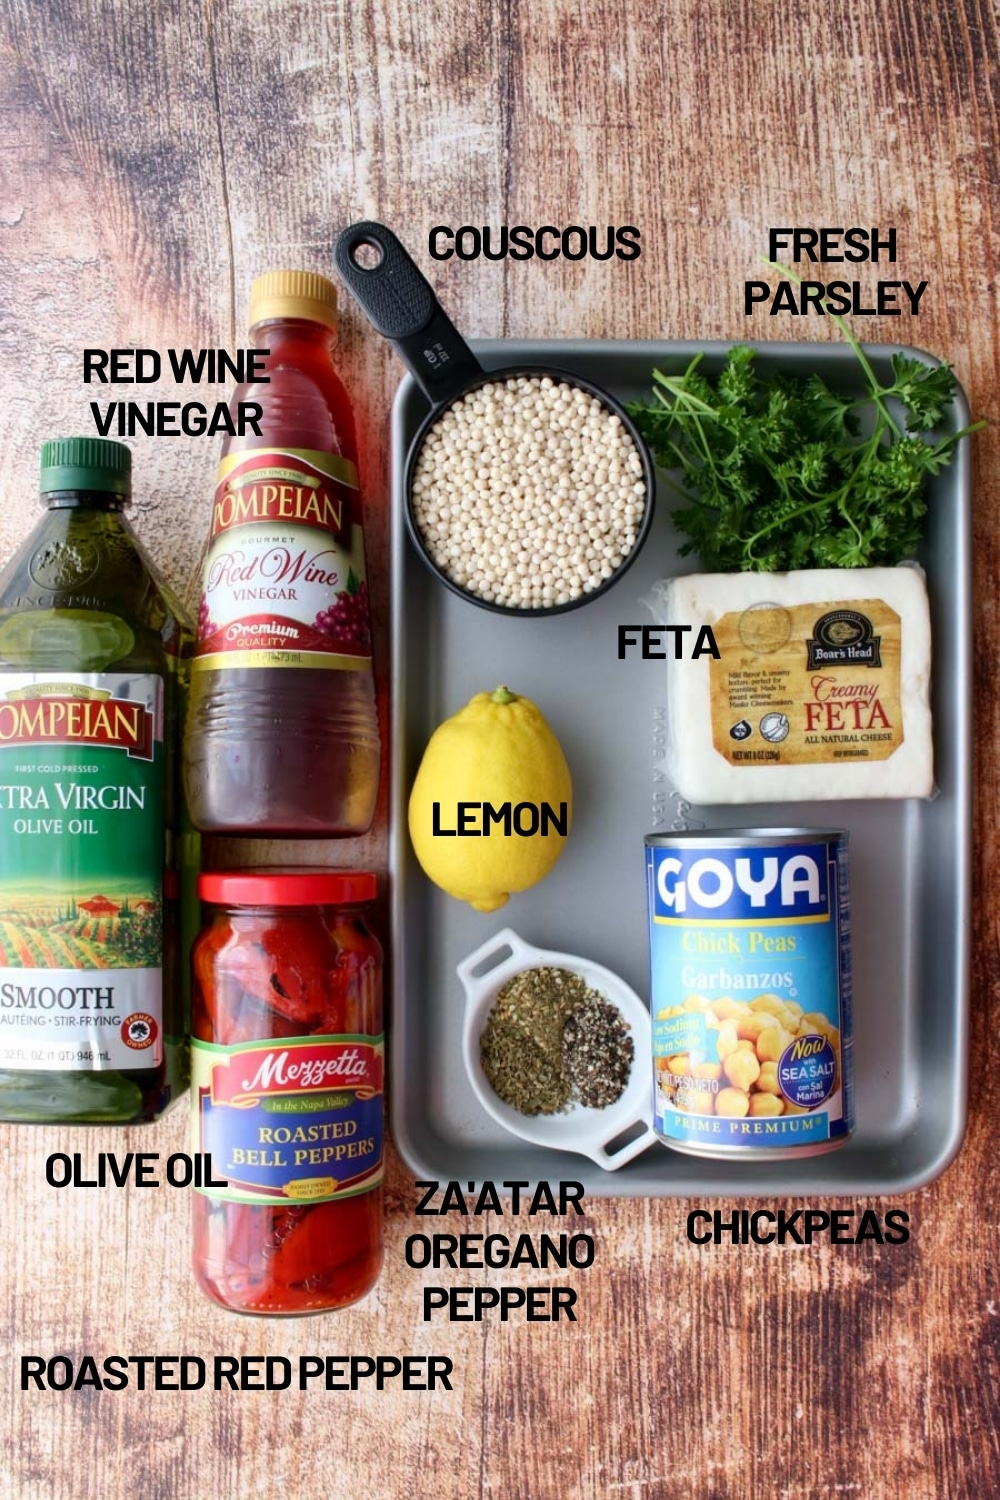 tray with ingredients to make couscous salad